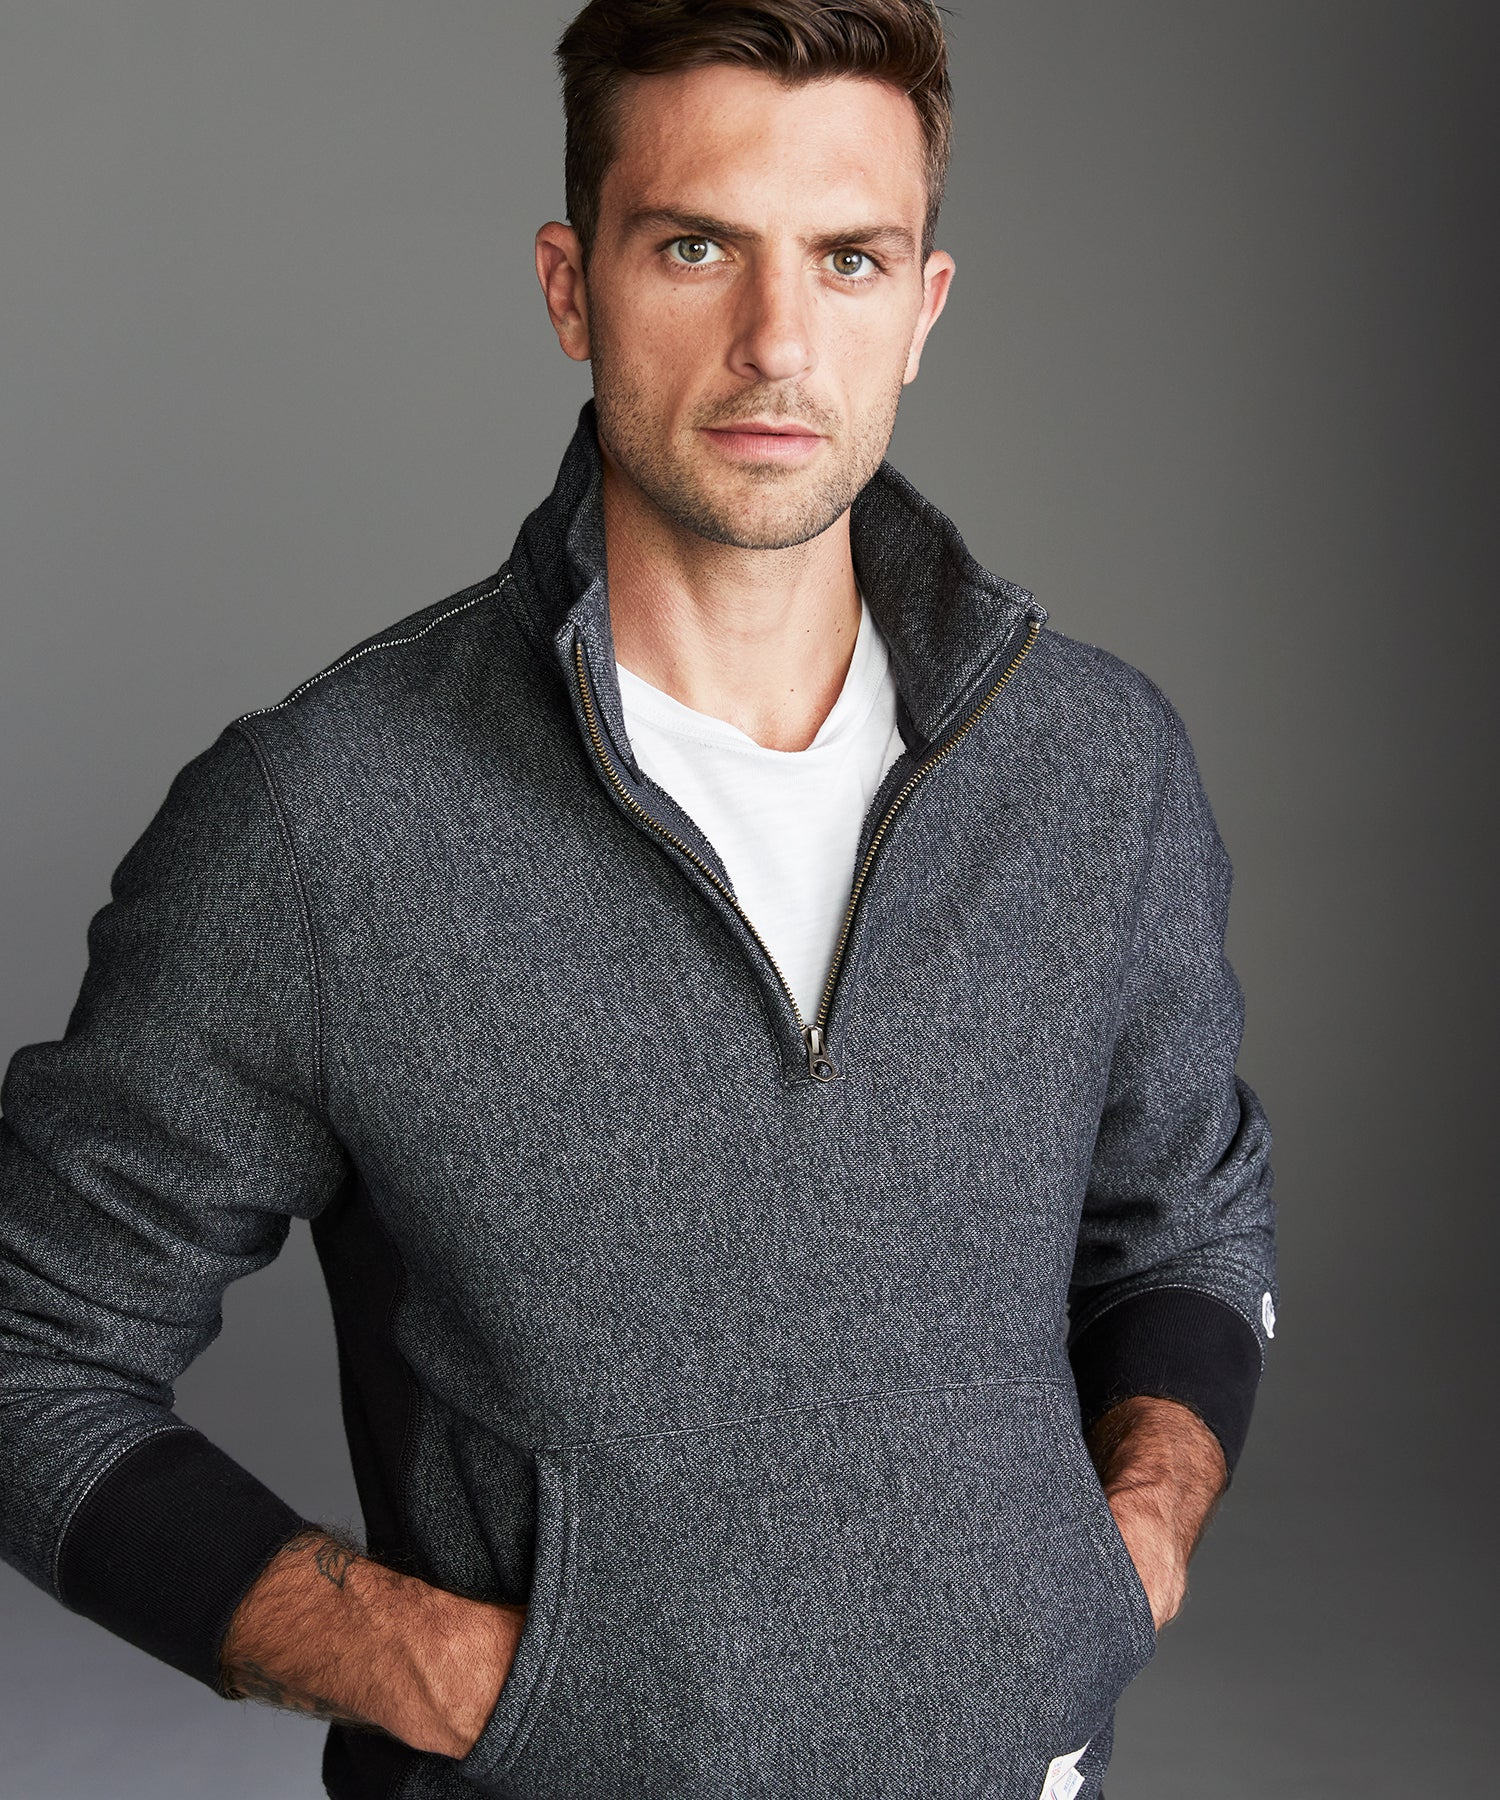 Quarter Zip Sweatshirt in Black Pepper Charcoal